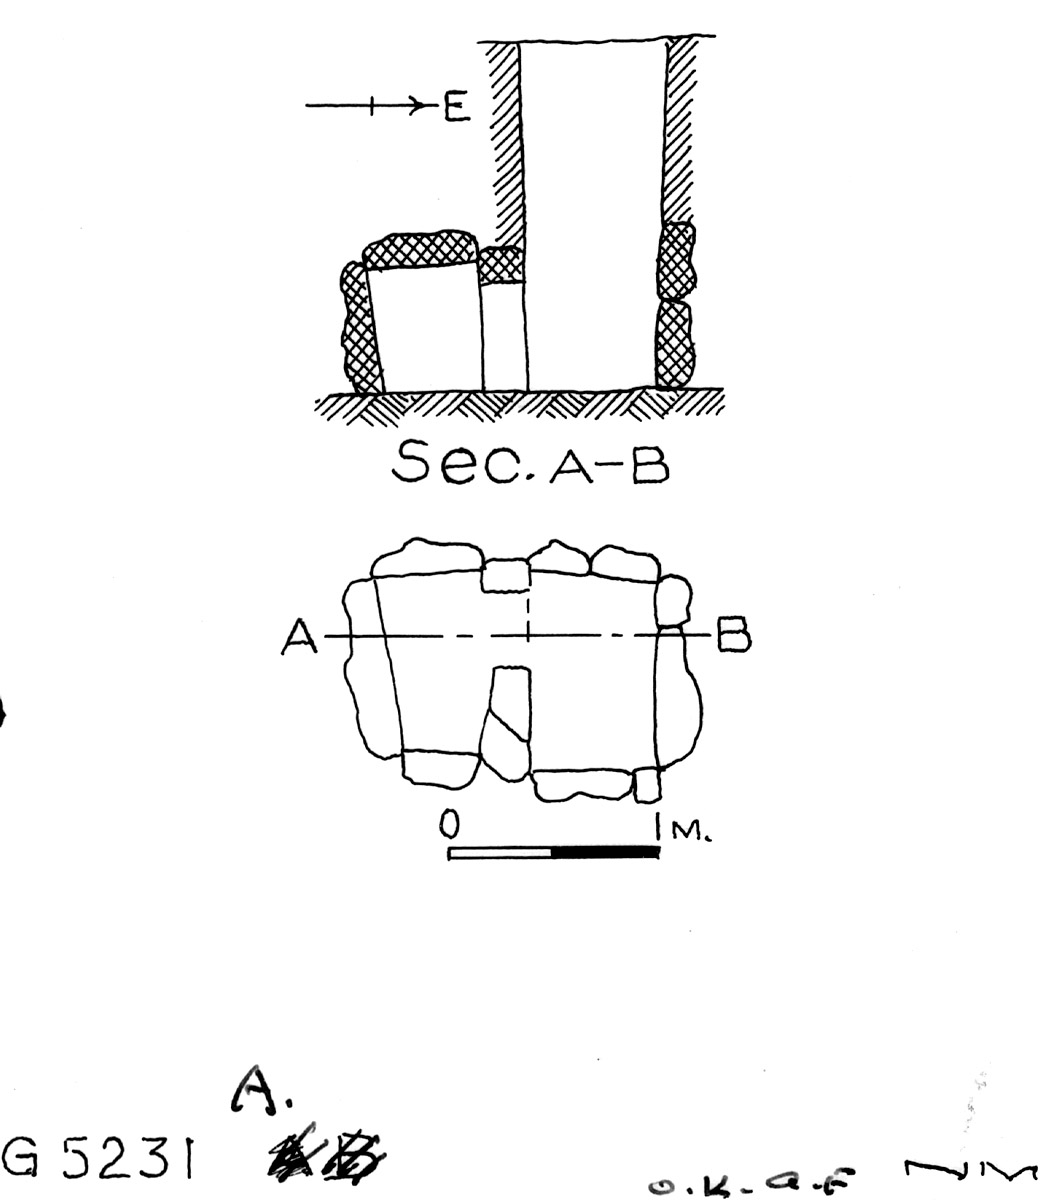 Maps and plans: G 5231, Shaft A